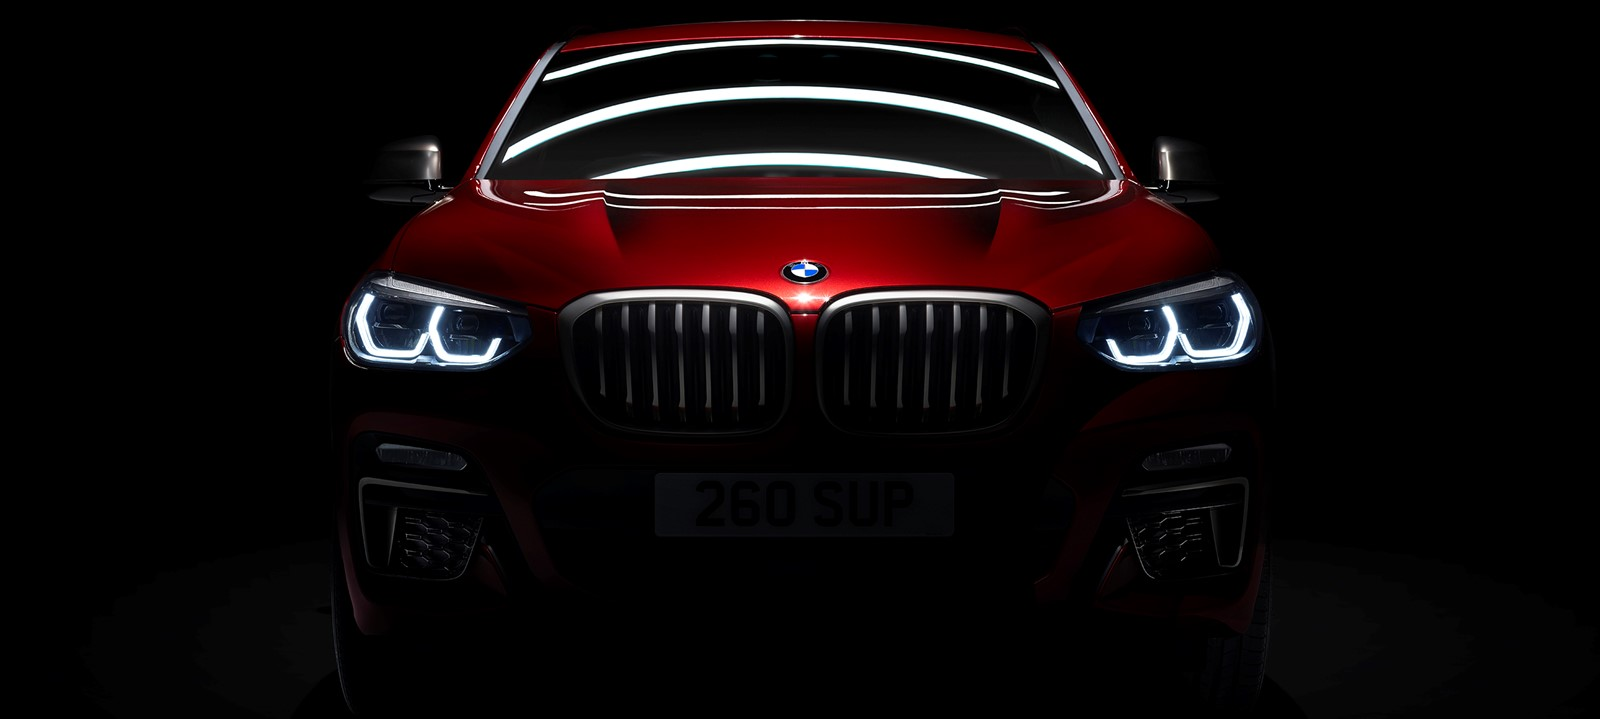 bmw x4 2018 stephen james enfield bmw. Black Bedroom Furniture Sets. Home Design Ideas